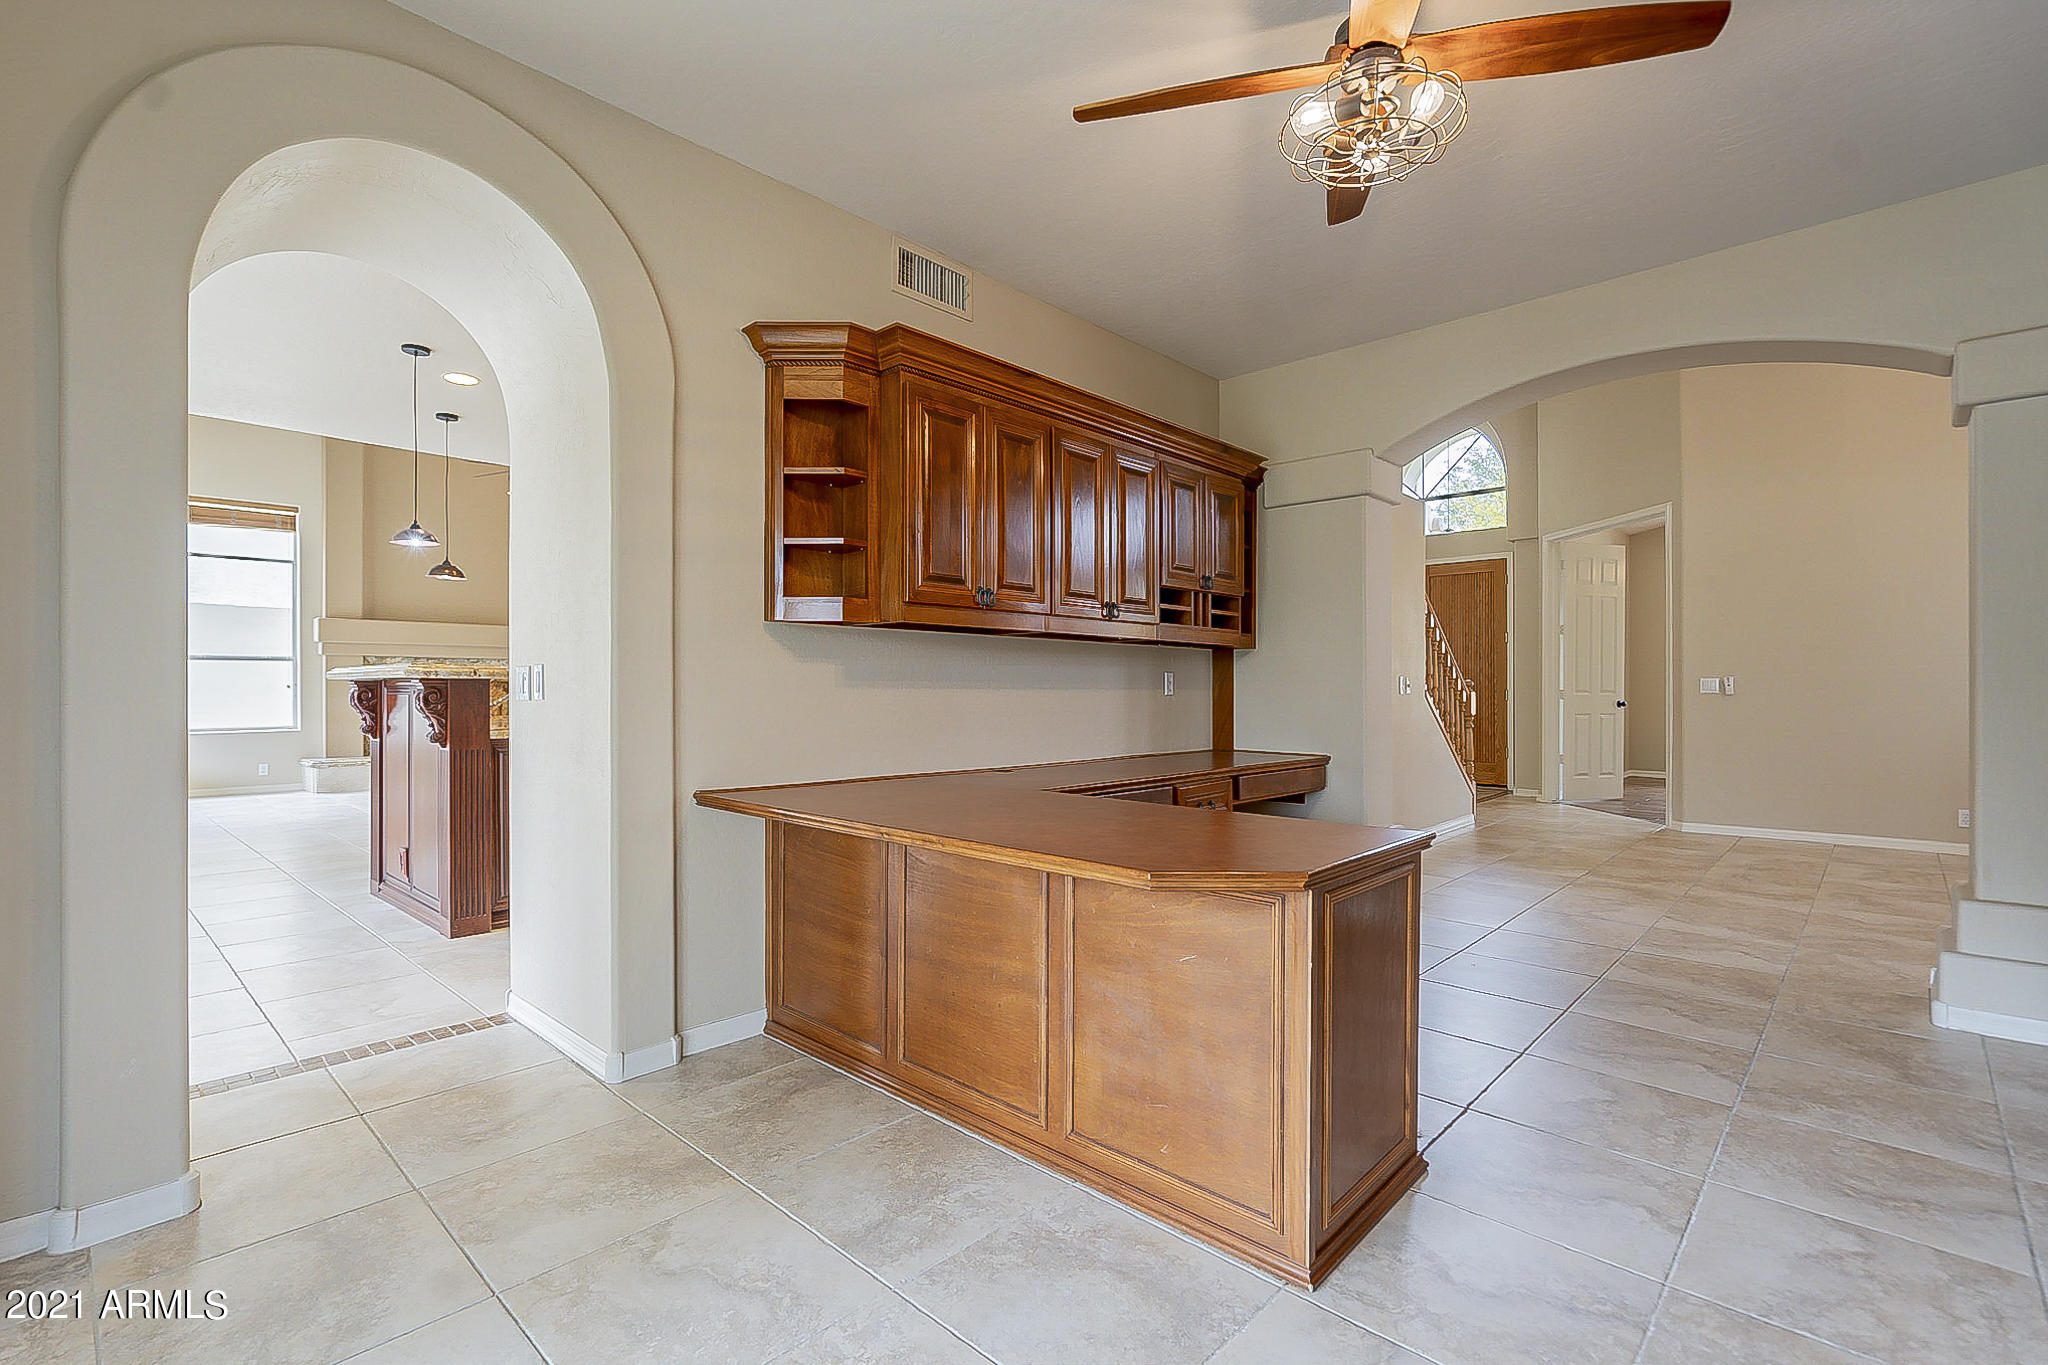 13840 31ST Place, Phoenix, Arizona 85048, 4 Bedrooms Bedrooms, ,4 BathroomsBathrooms,Residential,For Sale,31ST,6220334